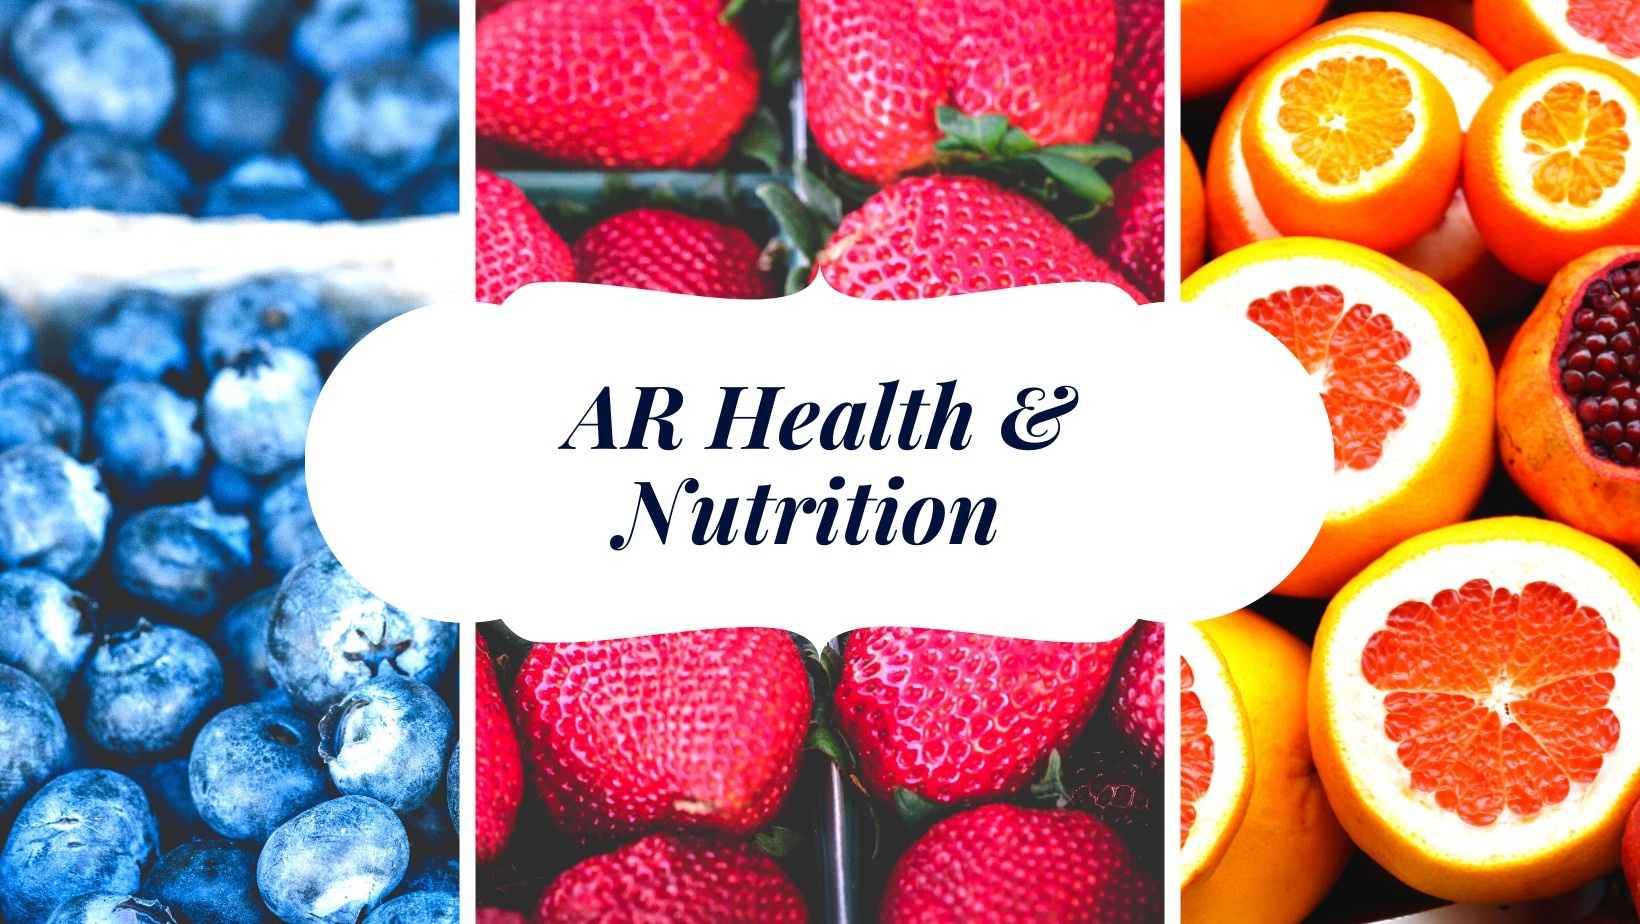 AR Health & Nutrition on Echelon Local   Juice Plus+ Distributor   (800) 315-1624   Fruit and Vegetable Nutrition For A Healthy Lifestyle.